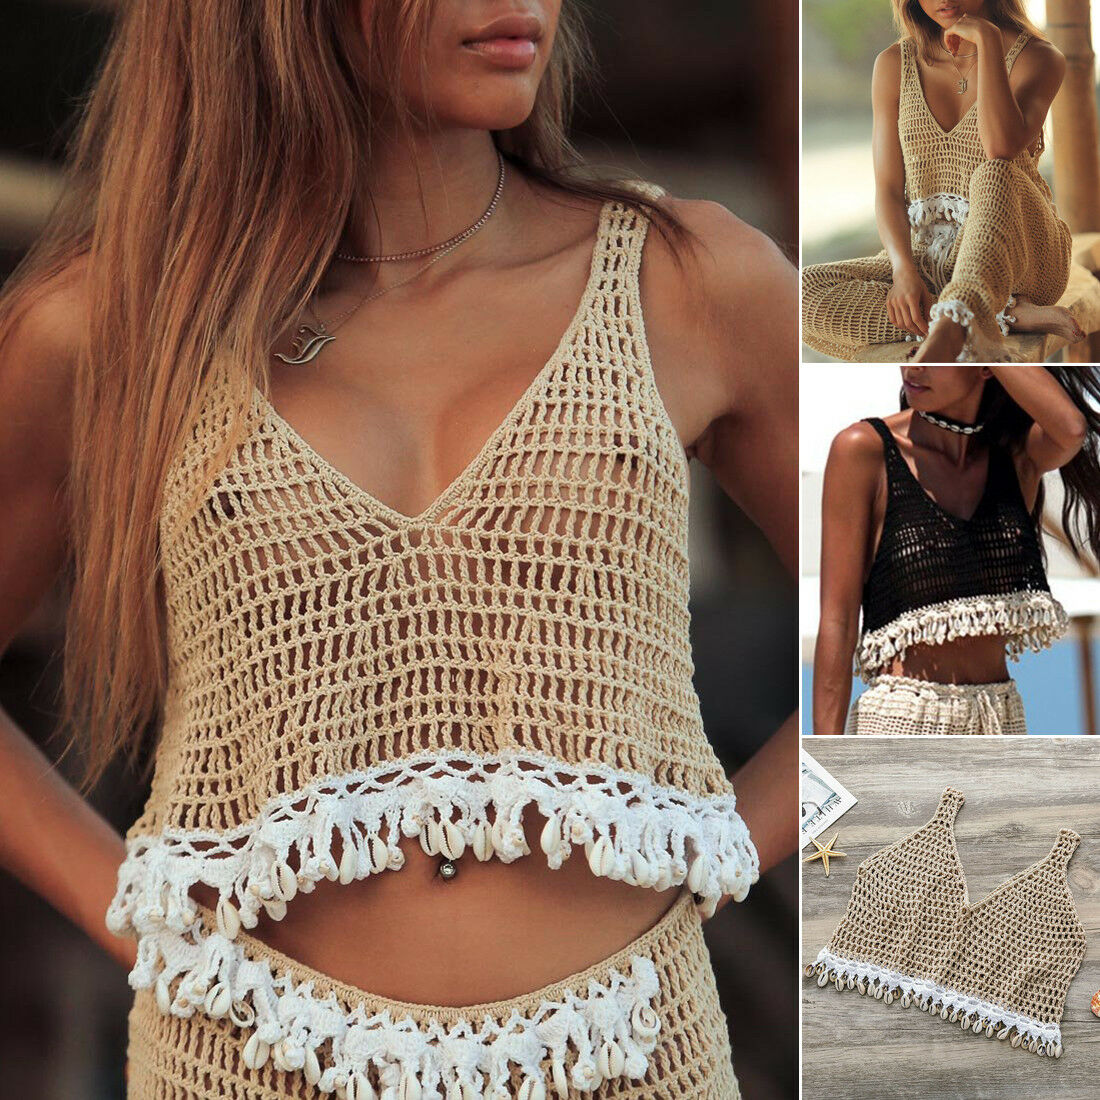 Women's <font><b>Crochet</b></font> Lace <font><b>Crop</b></font> <font><b>Top</b></font> <font><b>Sexy</b></font> Vest Fashion Tassel Cami Sleeveless <font><b>Top</b></font> Summer Beachwear Camis image